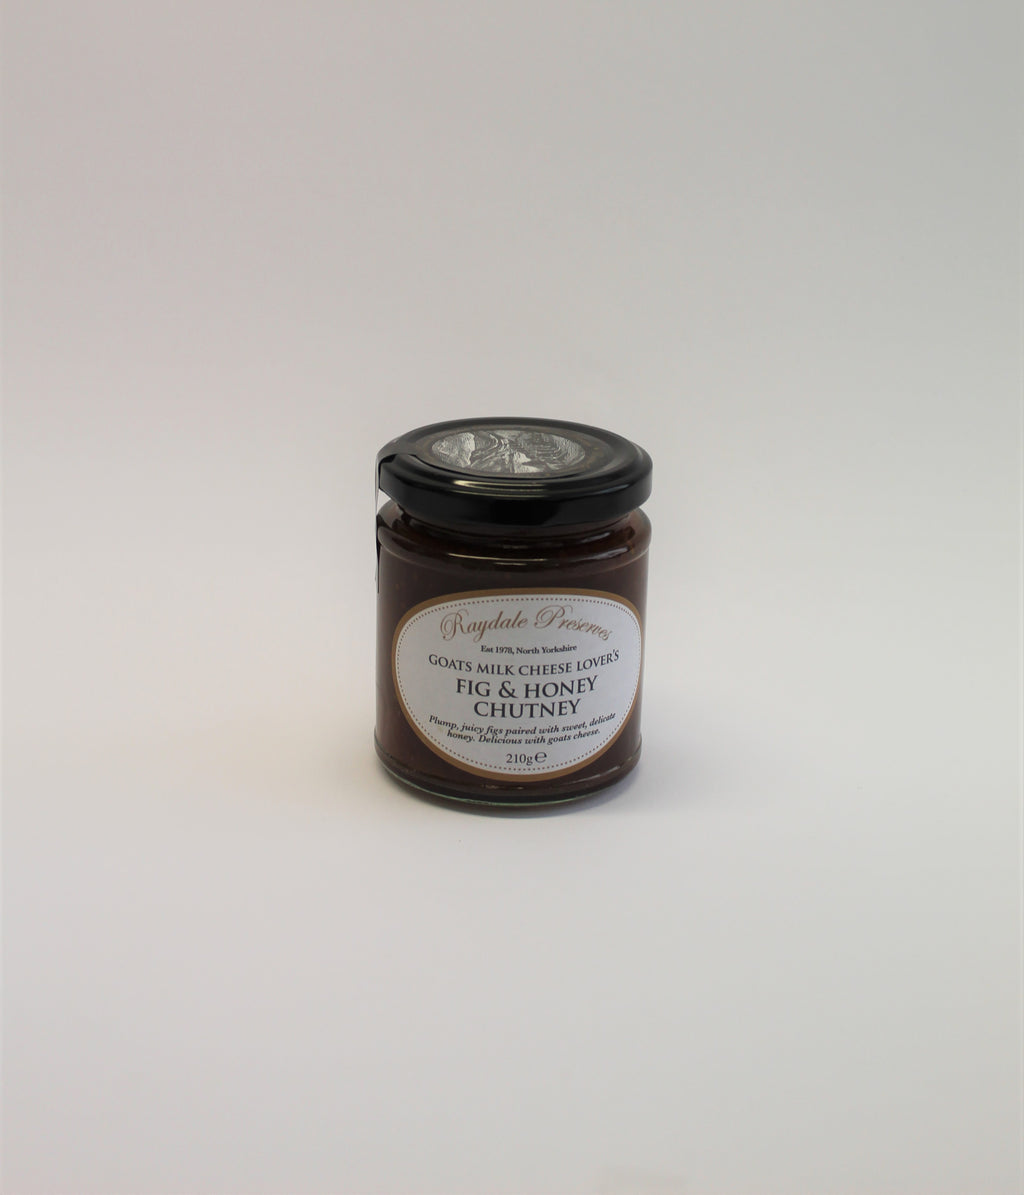 Goats milk cheese lover's fig & honey chutney